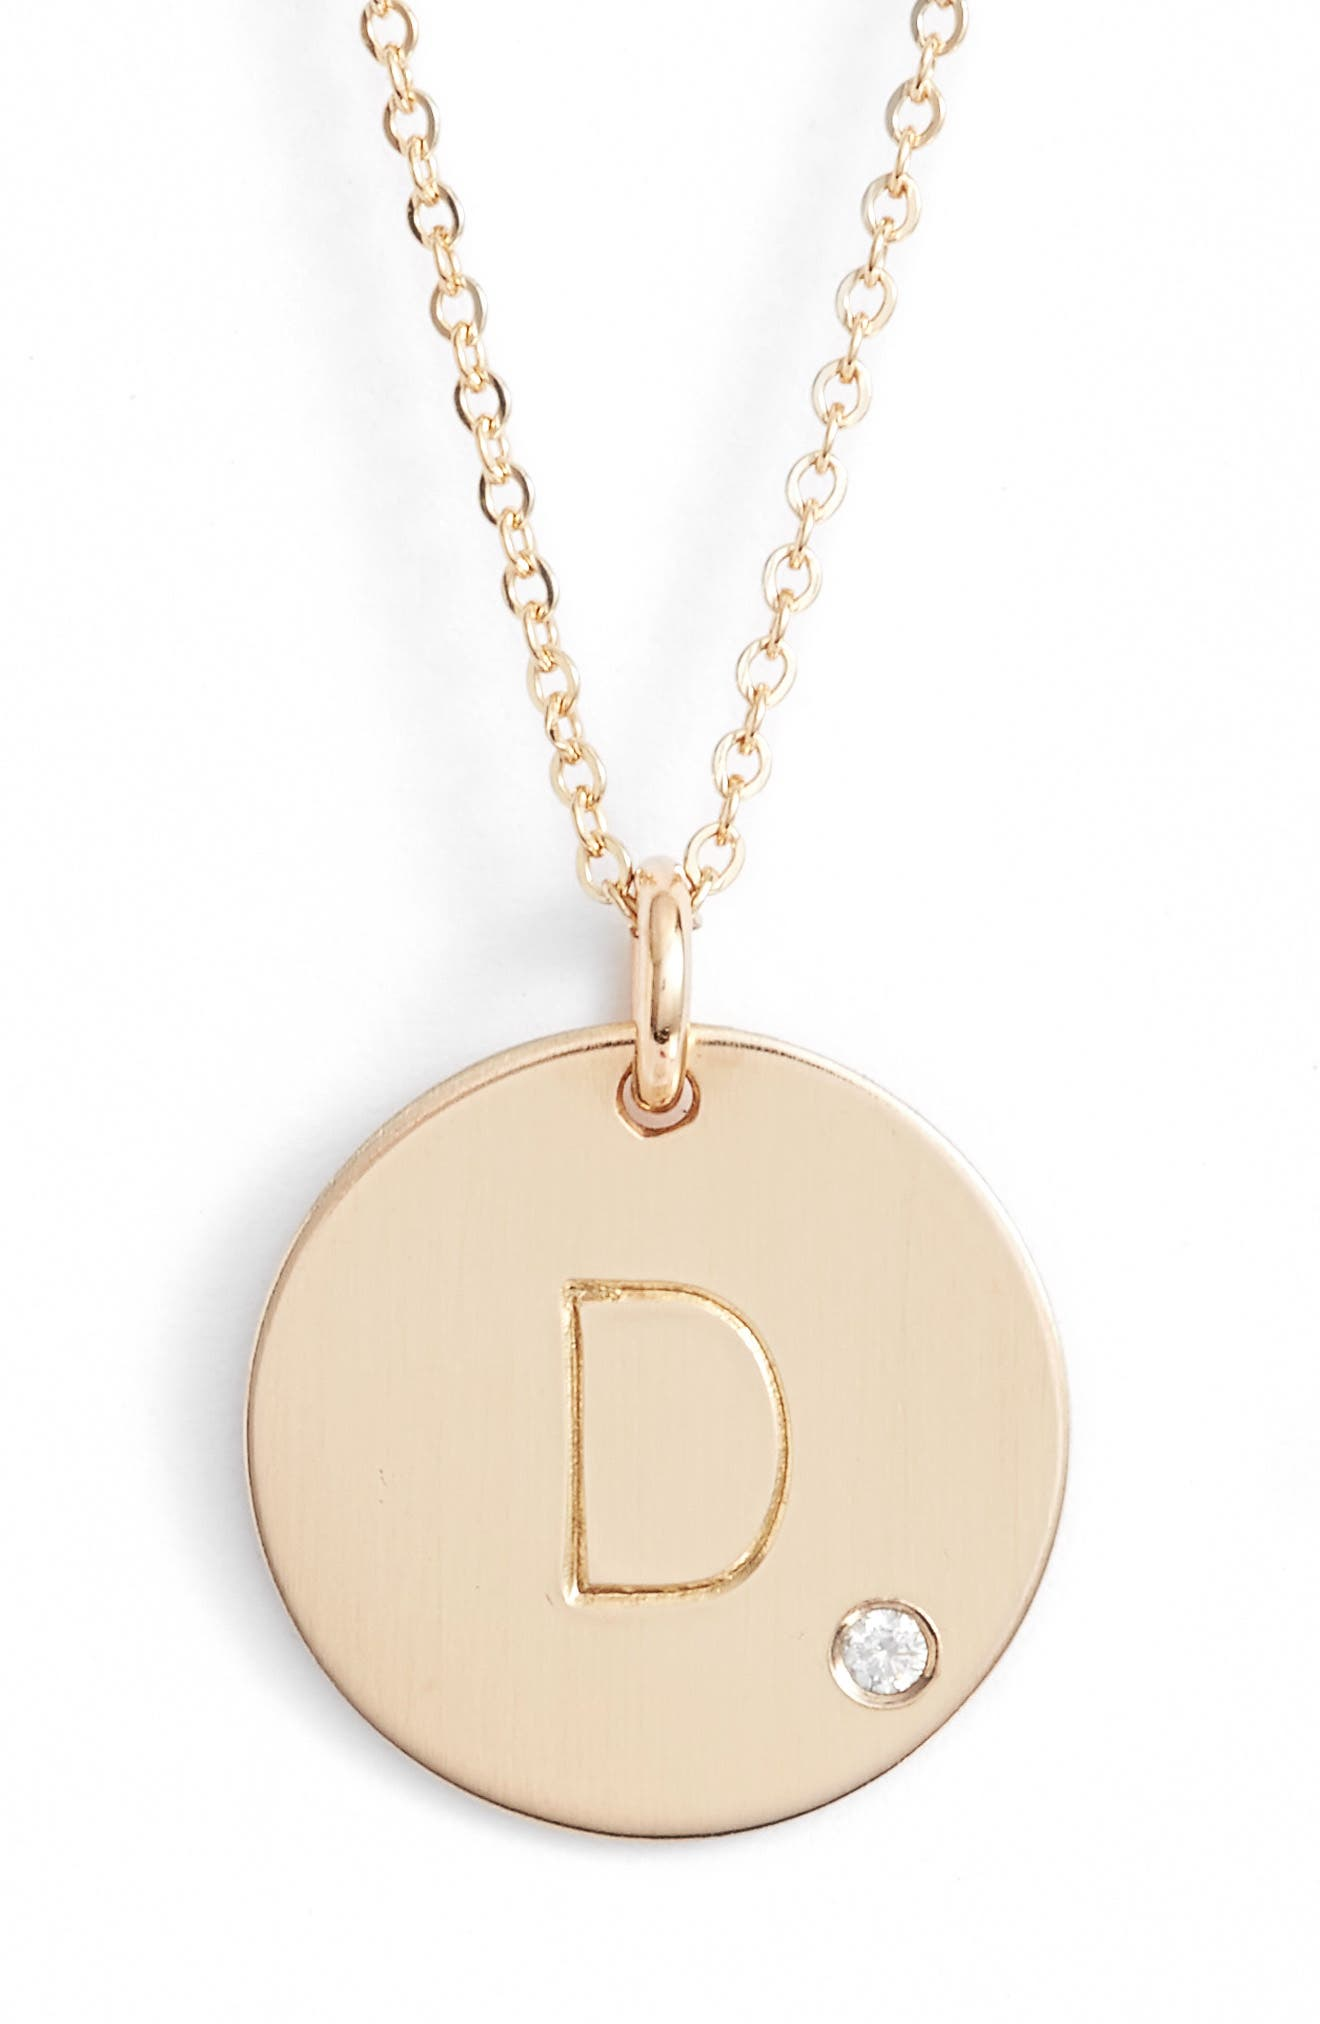 Diamond Initial Pendant Necklace,                         Main,                         color, Gold/ D